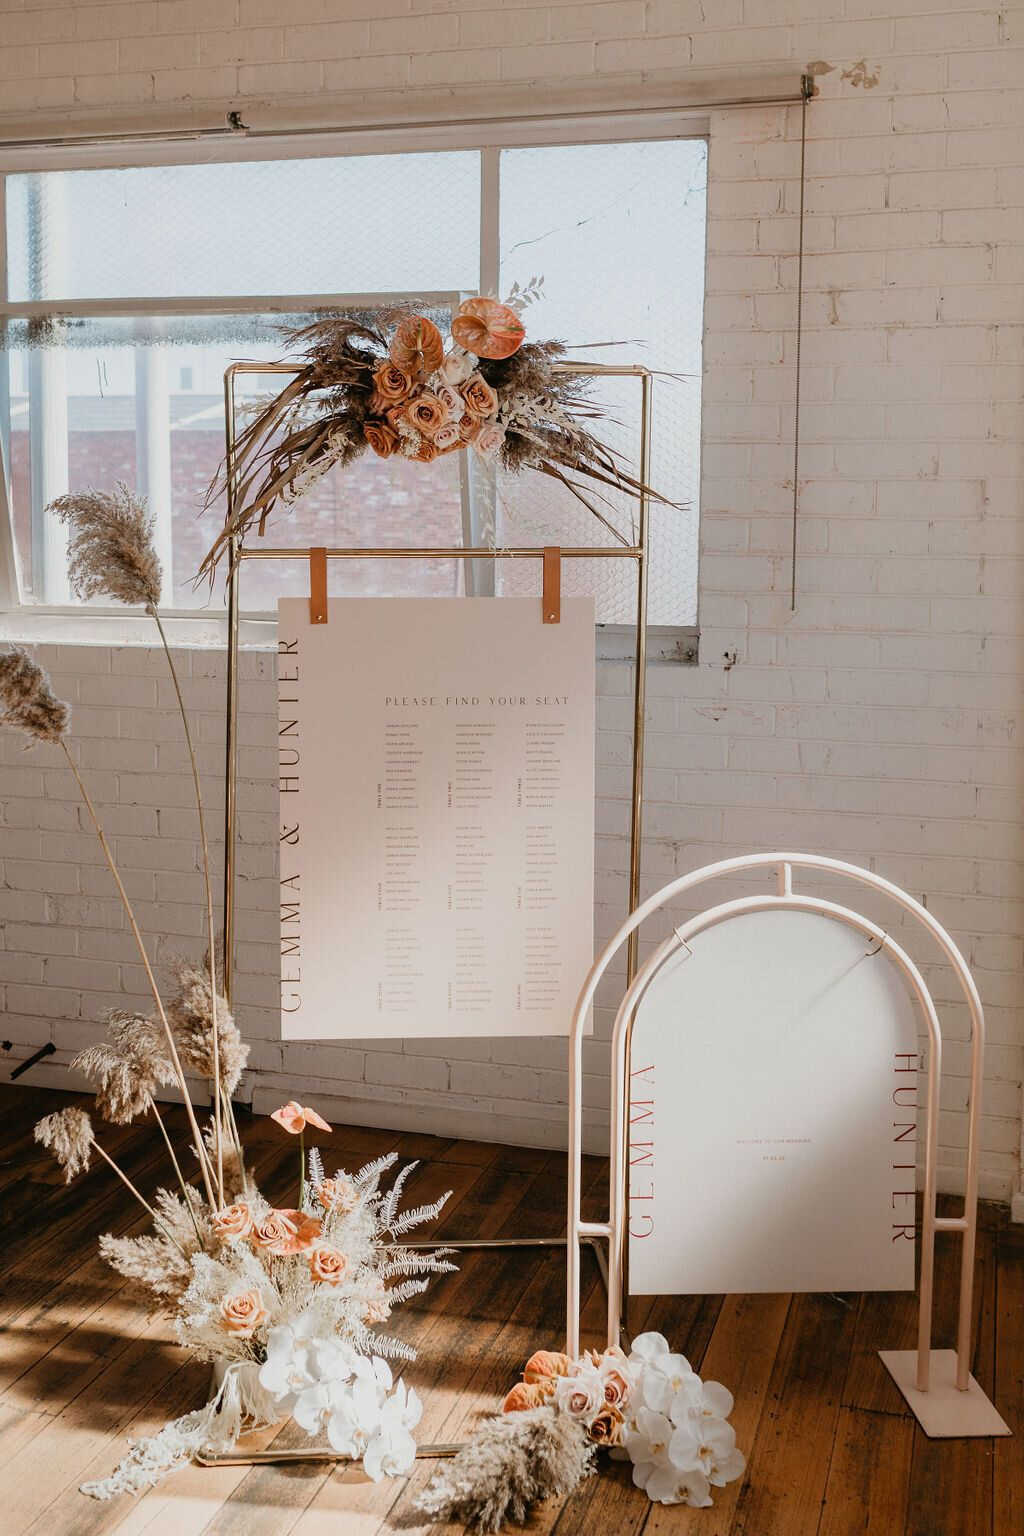 trendy contemporary wedding signature board ideas with dried flowers and metallics